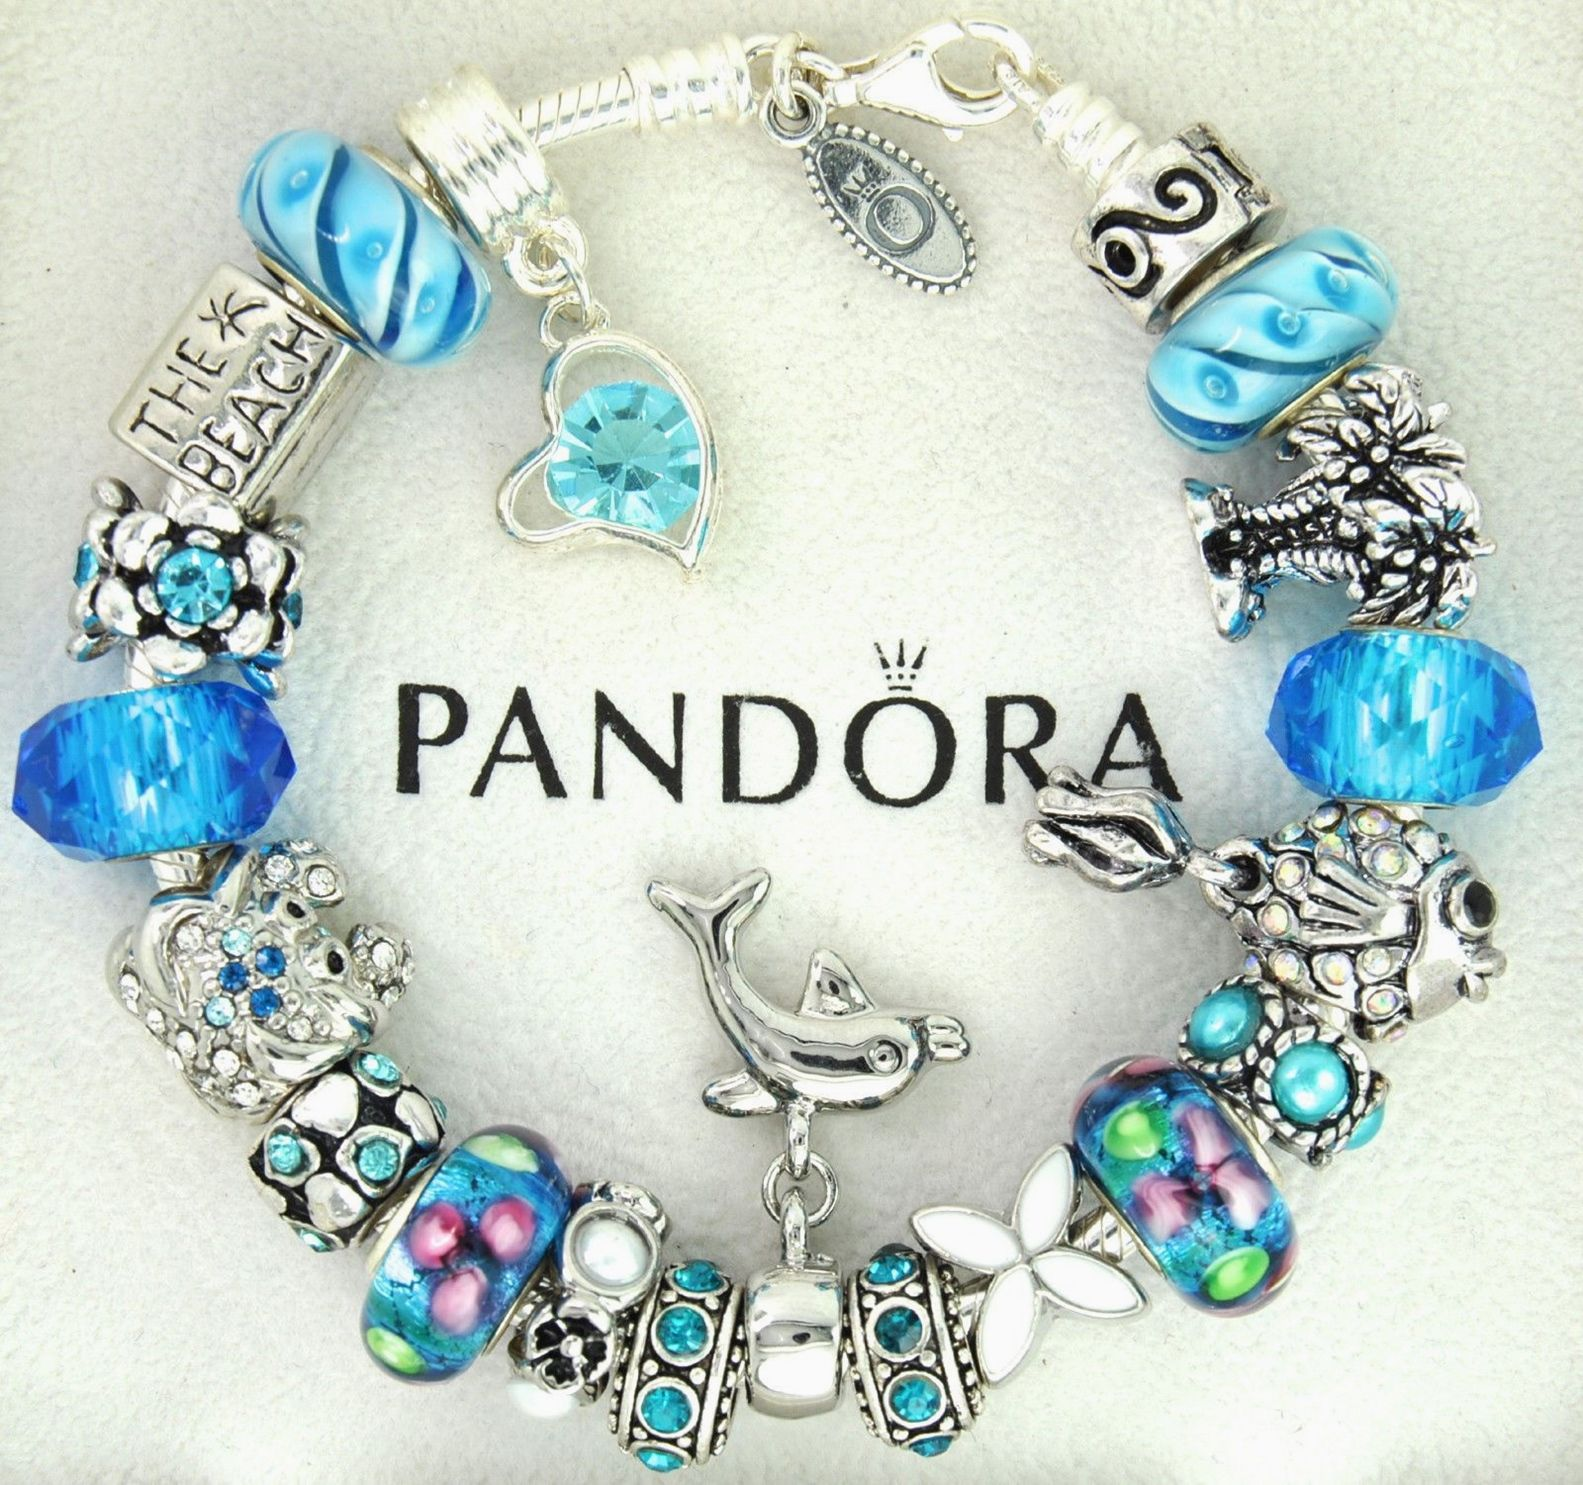 pandora jewelry donation request | Pandora Jewelry in 2019 | Pandora